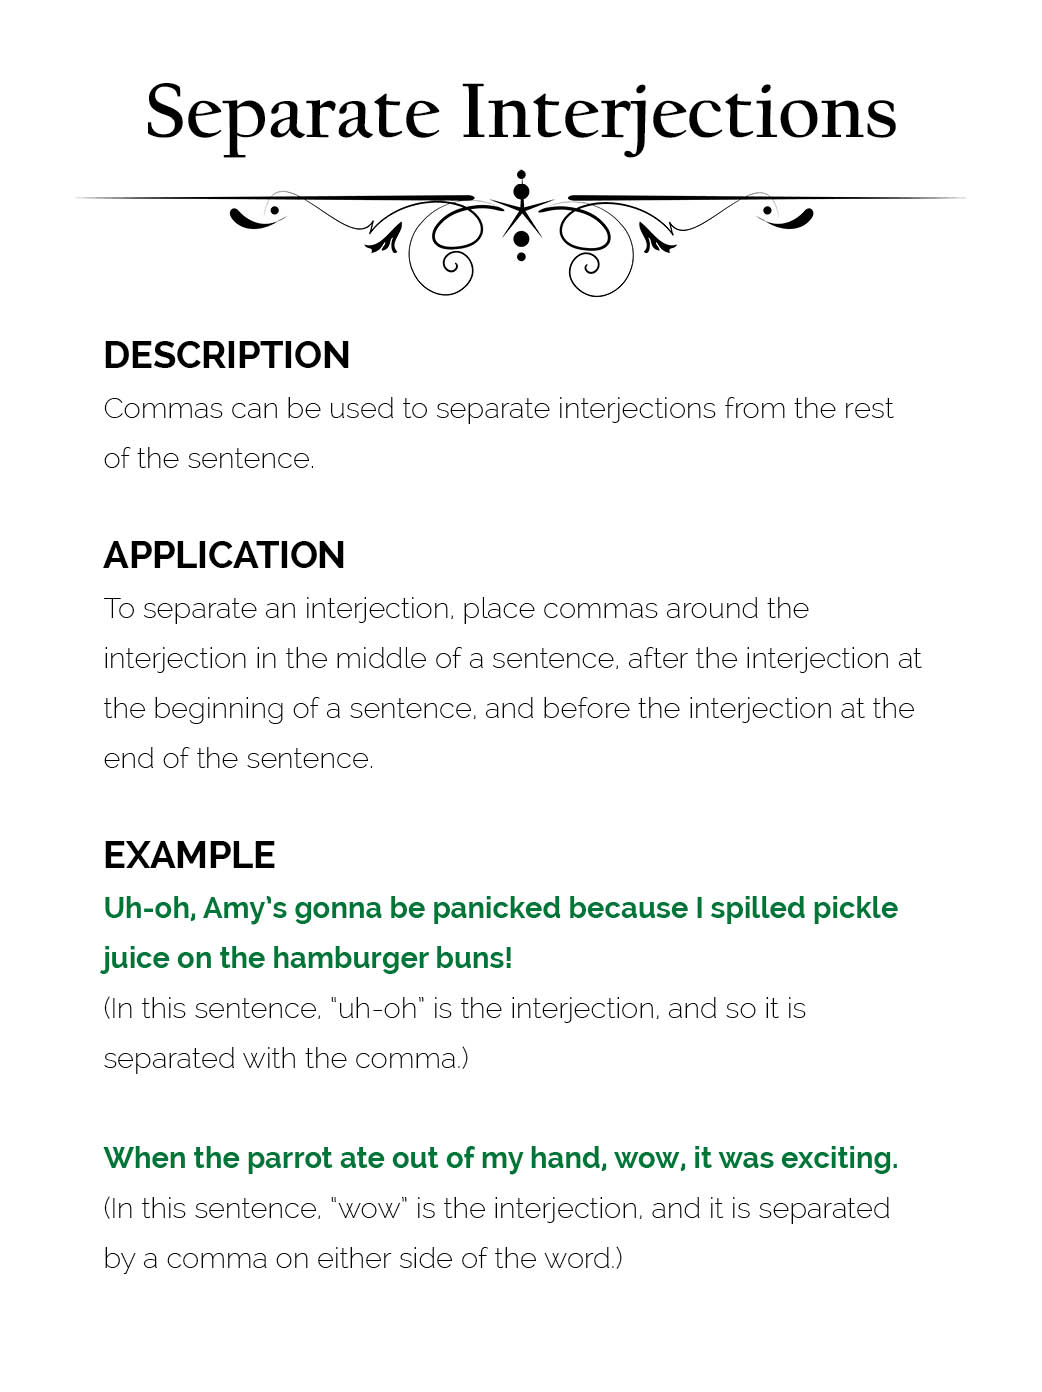 comma-use-9-separates-interjections